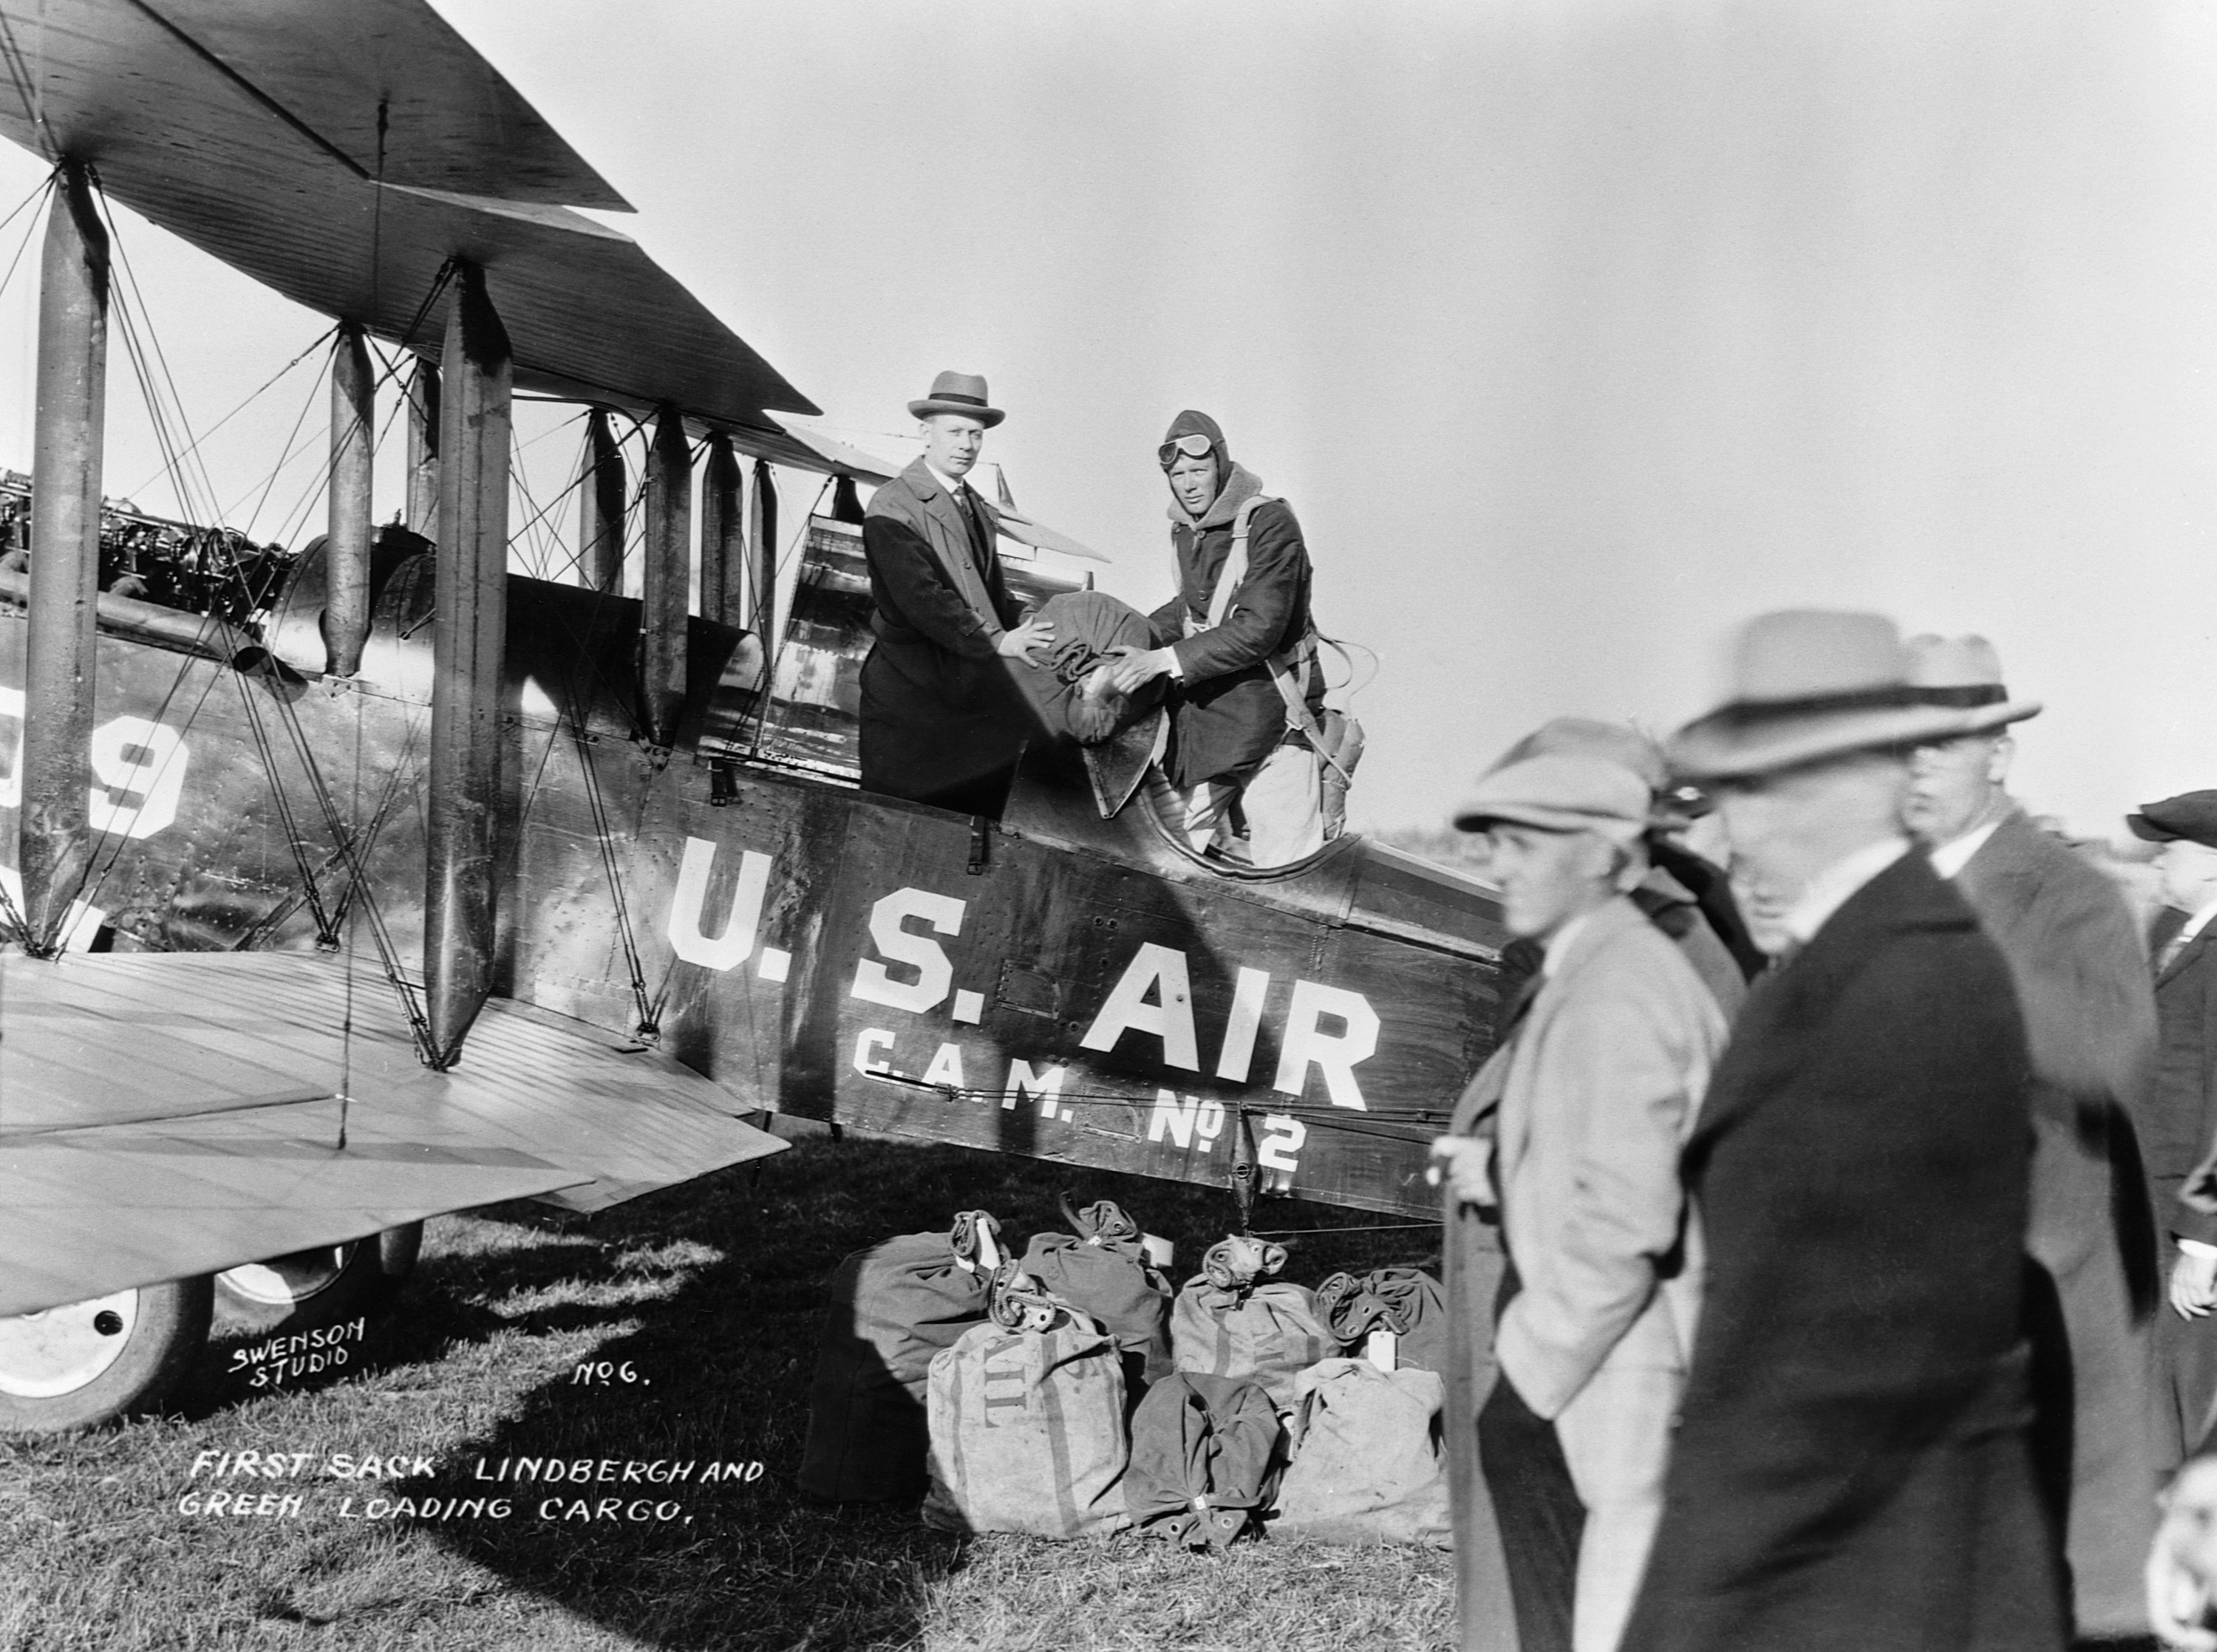 Two men, one in a fedora and one in a soft aviator helmet, stand holding a bag of mail in the cockpit of an old plane that says US Air